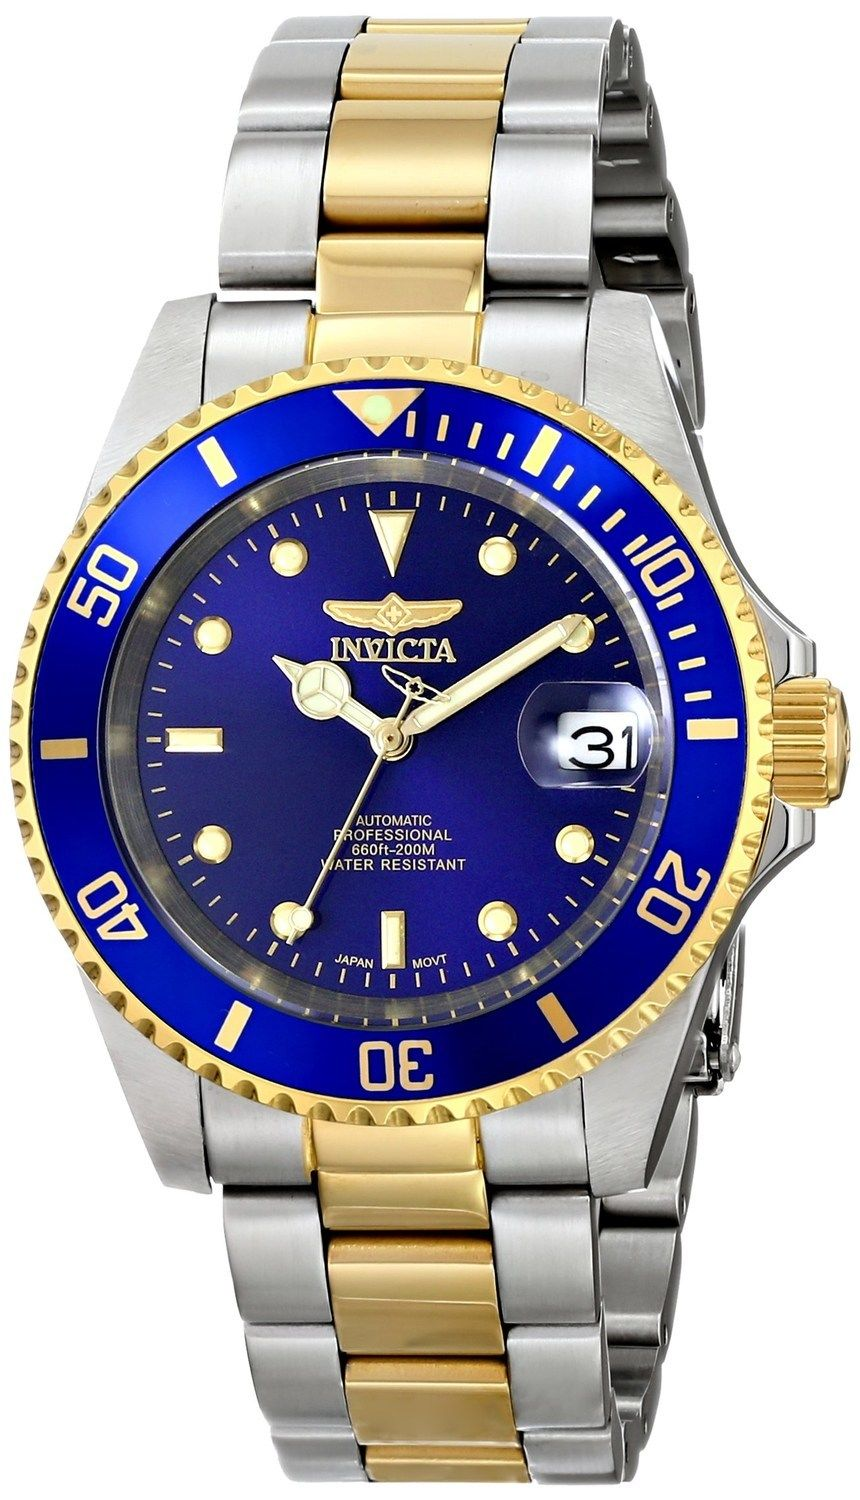 Invicta 8928OB Watch Review